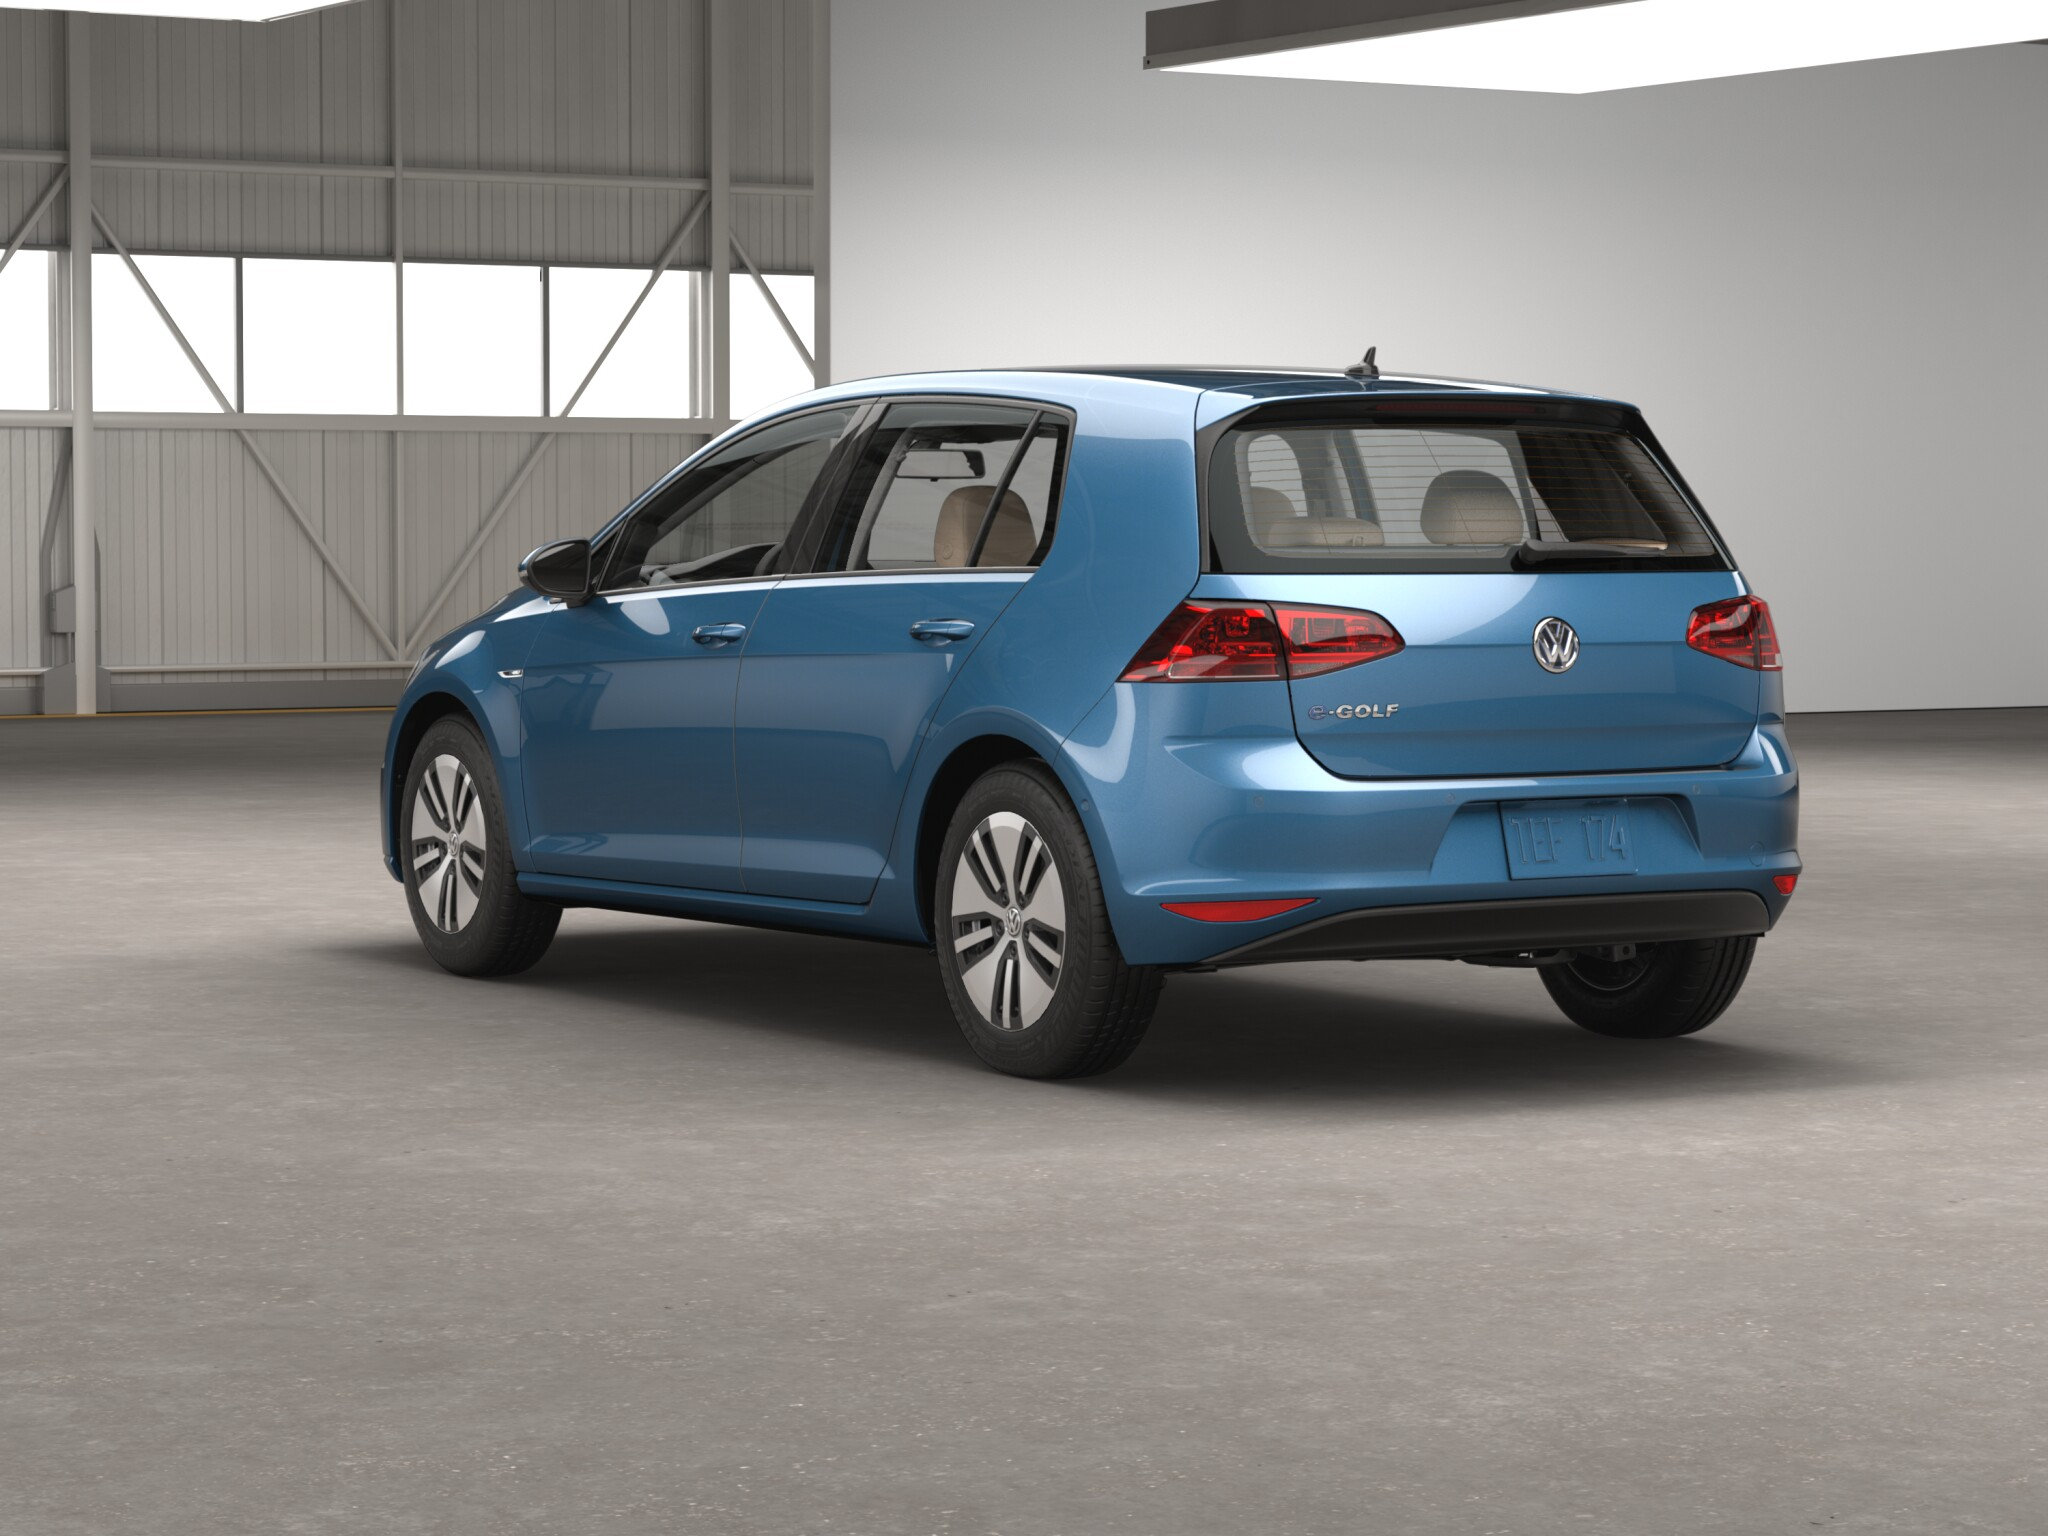 2016 Volkswagen E Golf Preview (View 4 of 11)